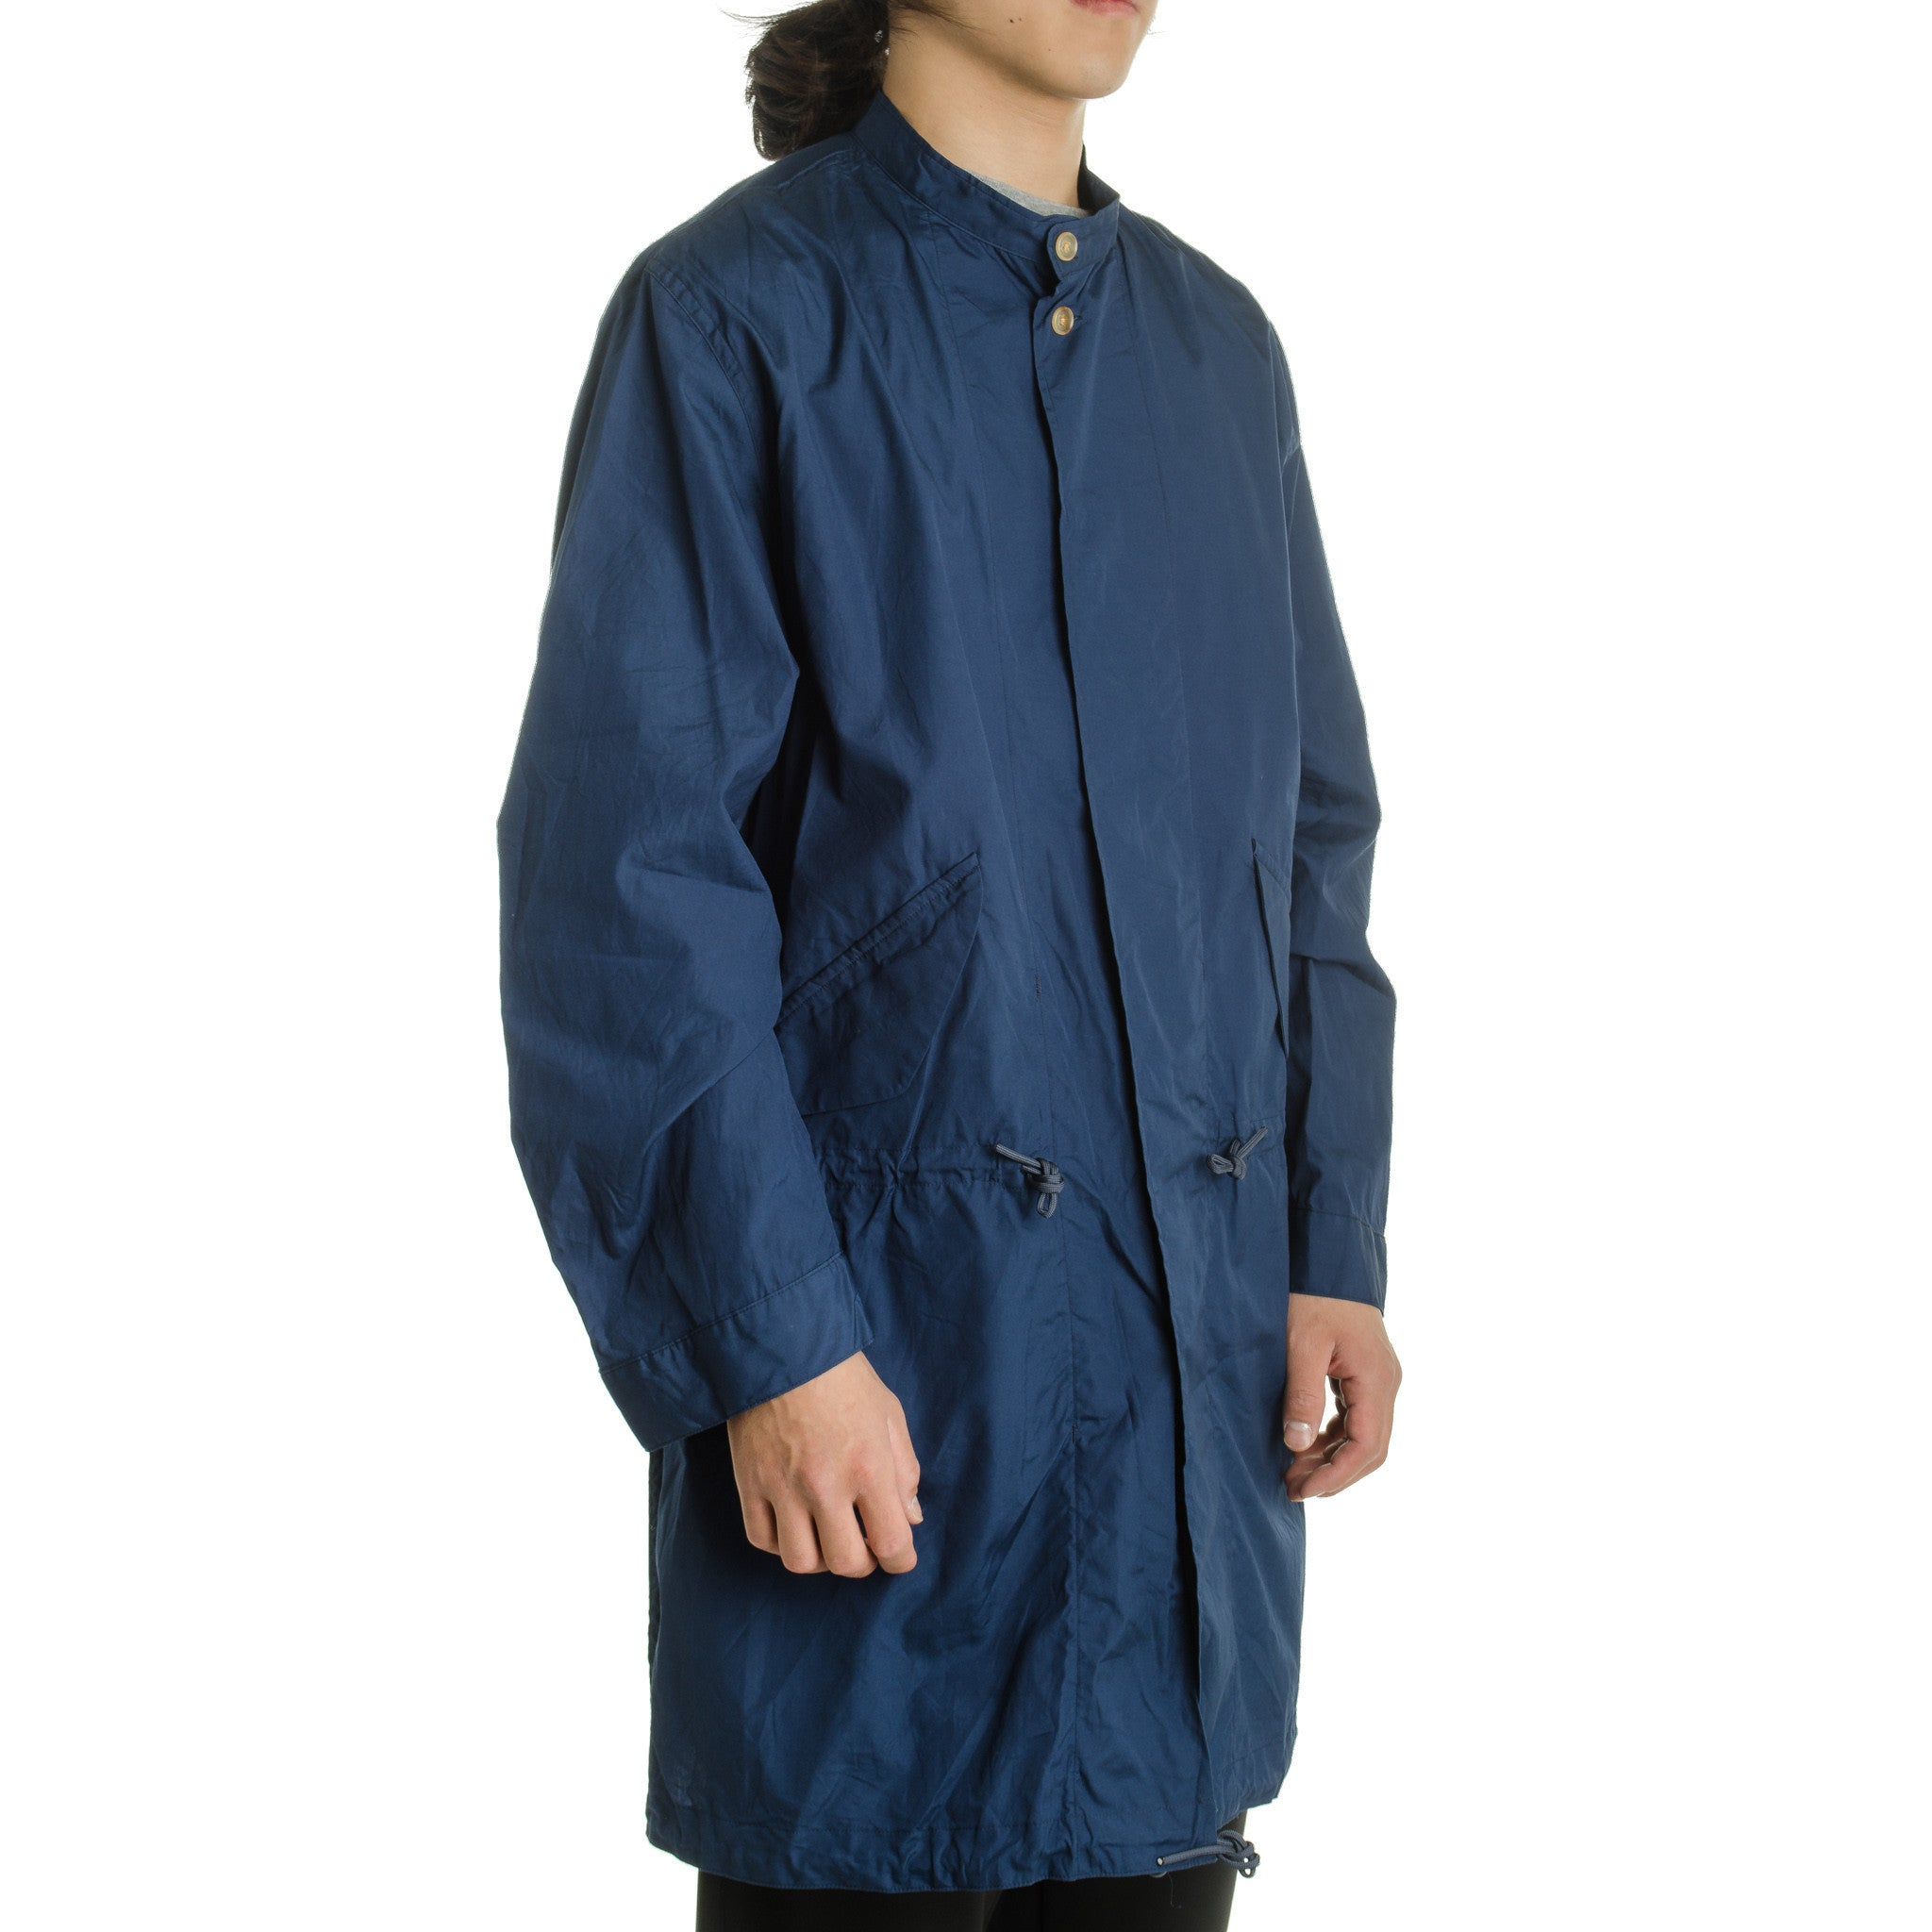 Mods Shirt Navy